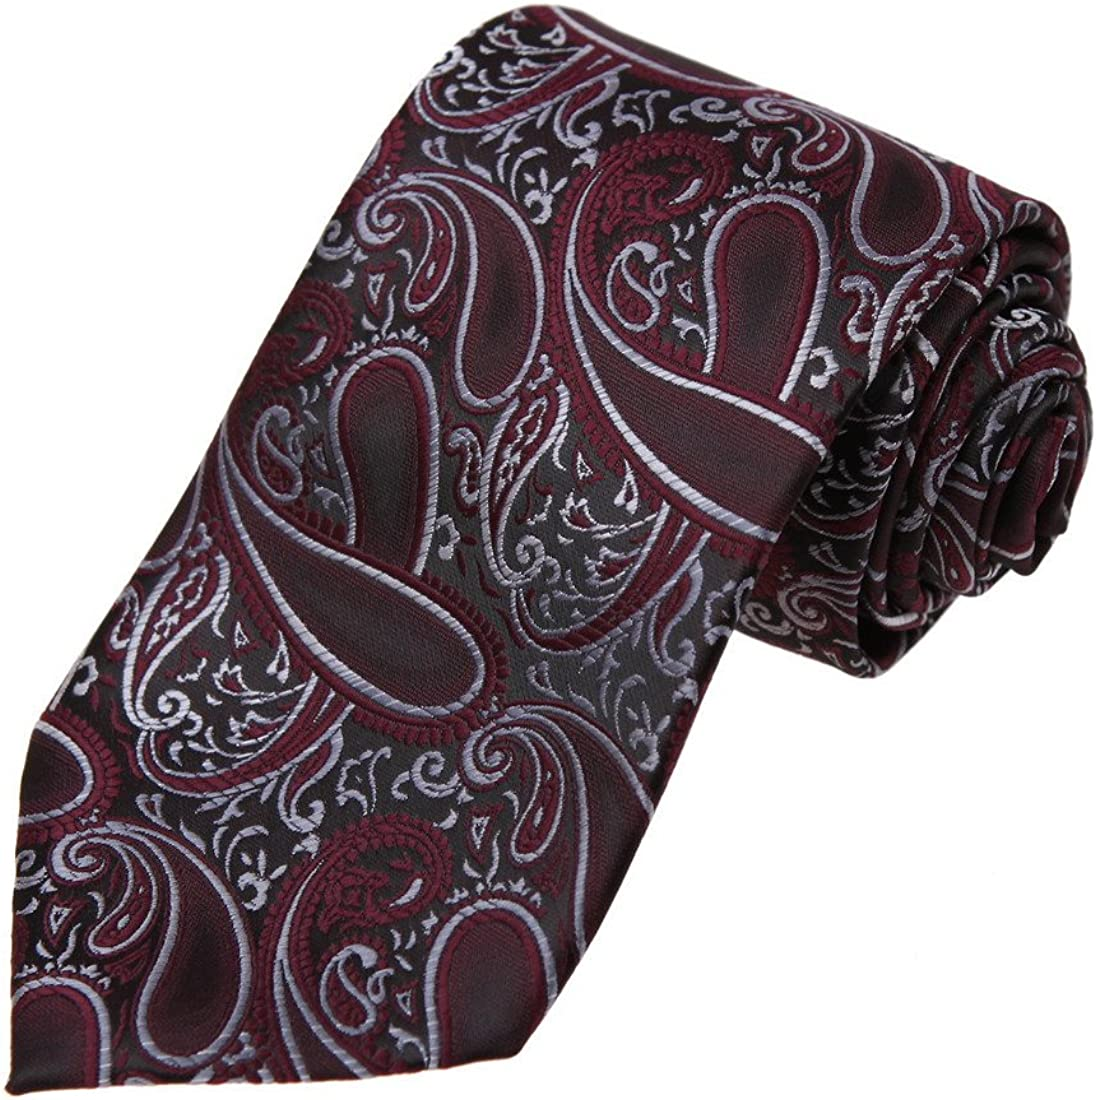 Dan Smith Men's Fashion Suppliers Patterned Microfiber Necktie With Free Gift Box Neck Tie